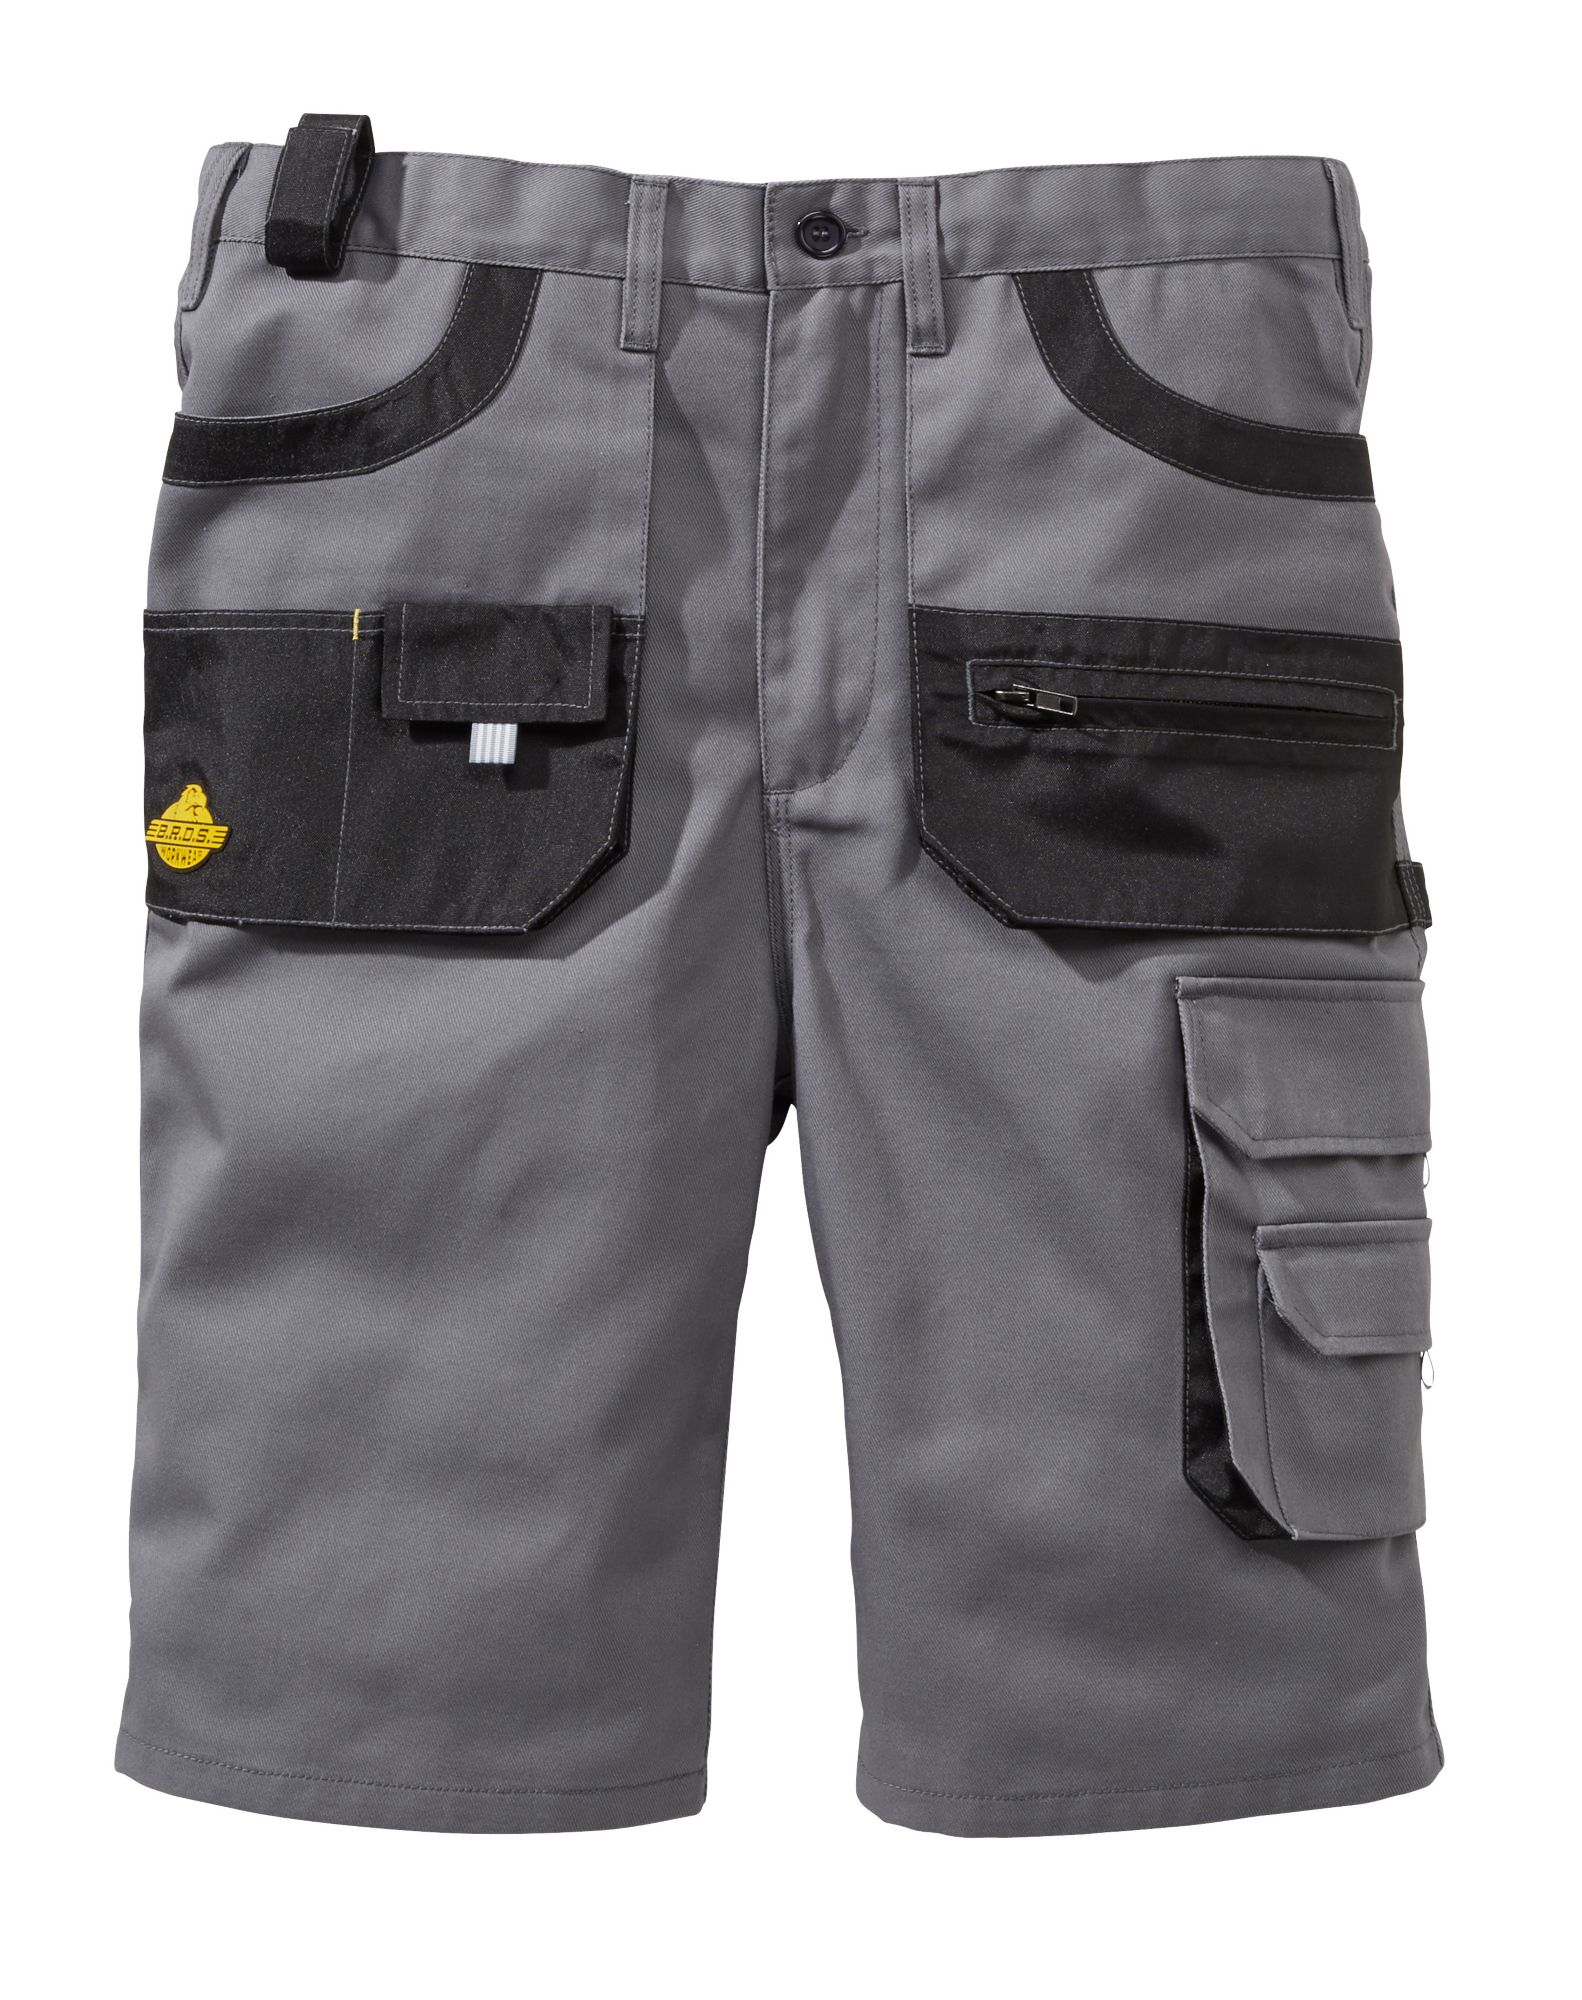 BRDS WORKWEAR B.R.D.S. Workwear Shorts »Workwear«